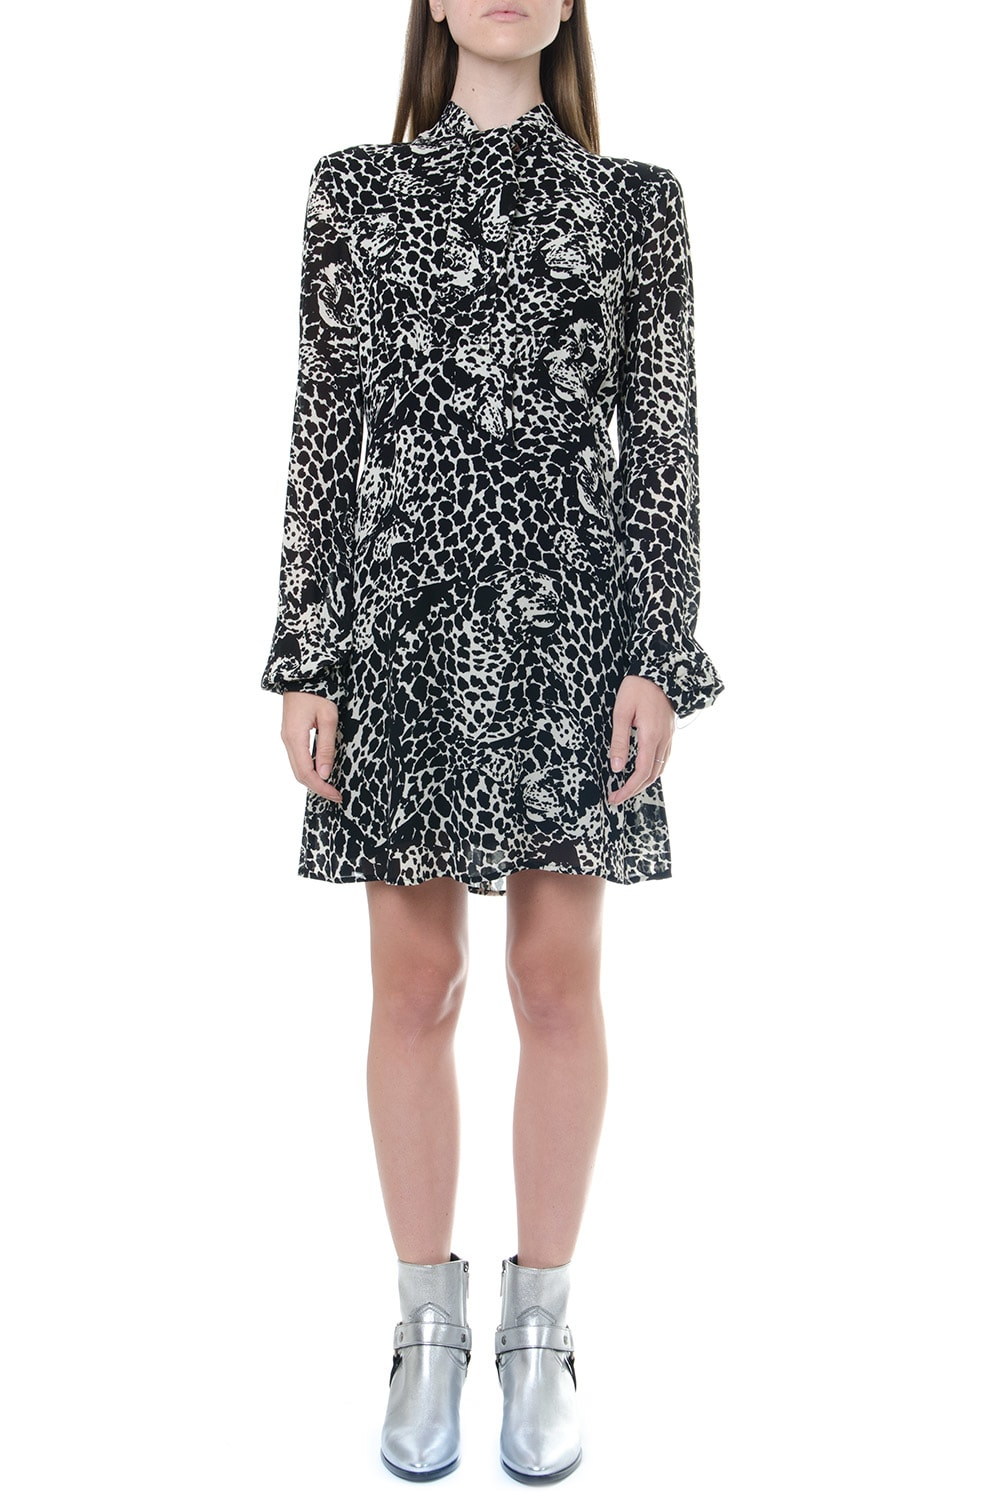 Saint Laurent Lavallière Dress In Viscose With Leopard S Head Print